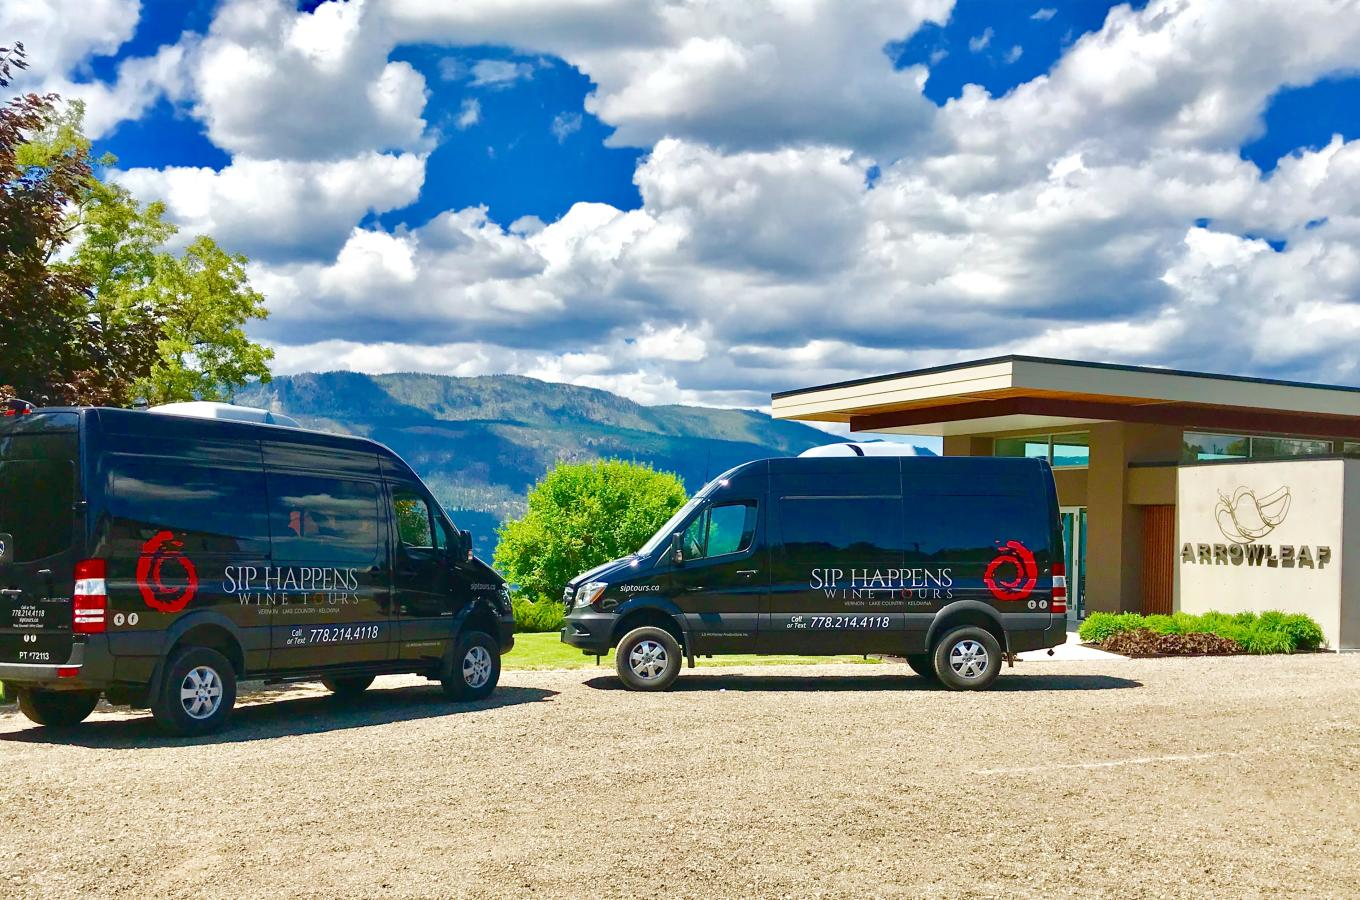 Luxury Mercedes Wine Tour Vans